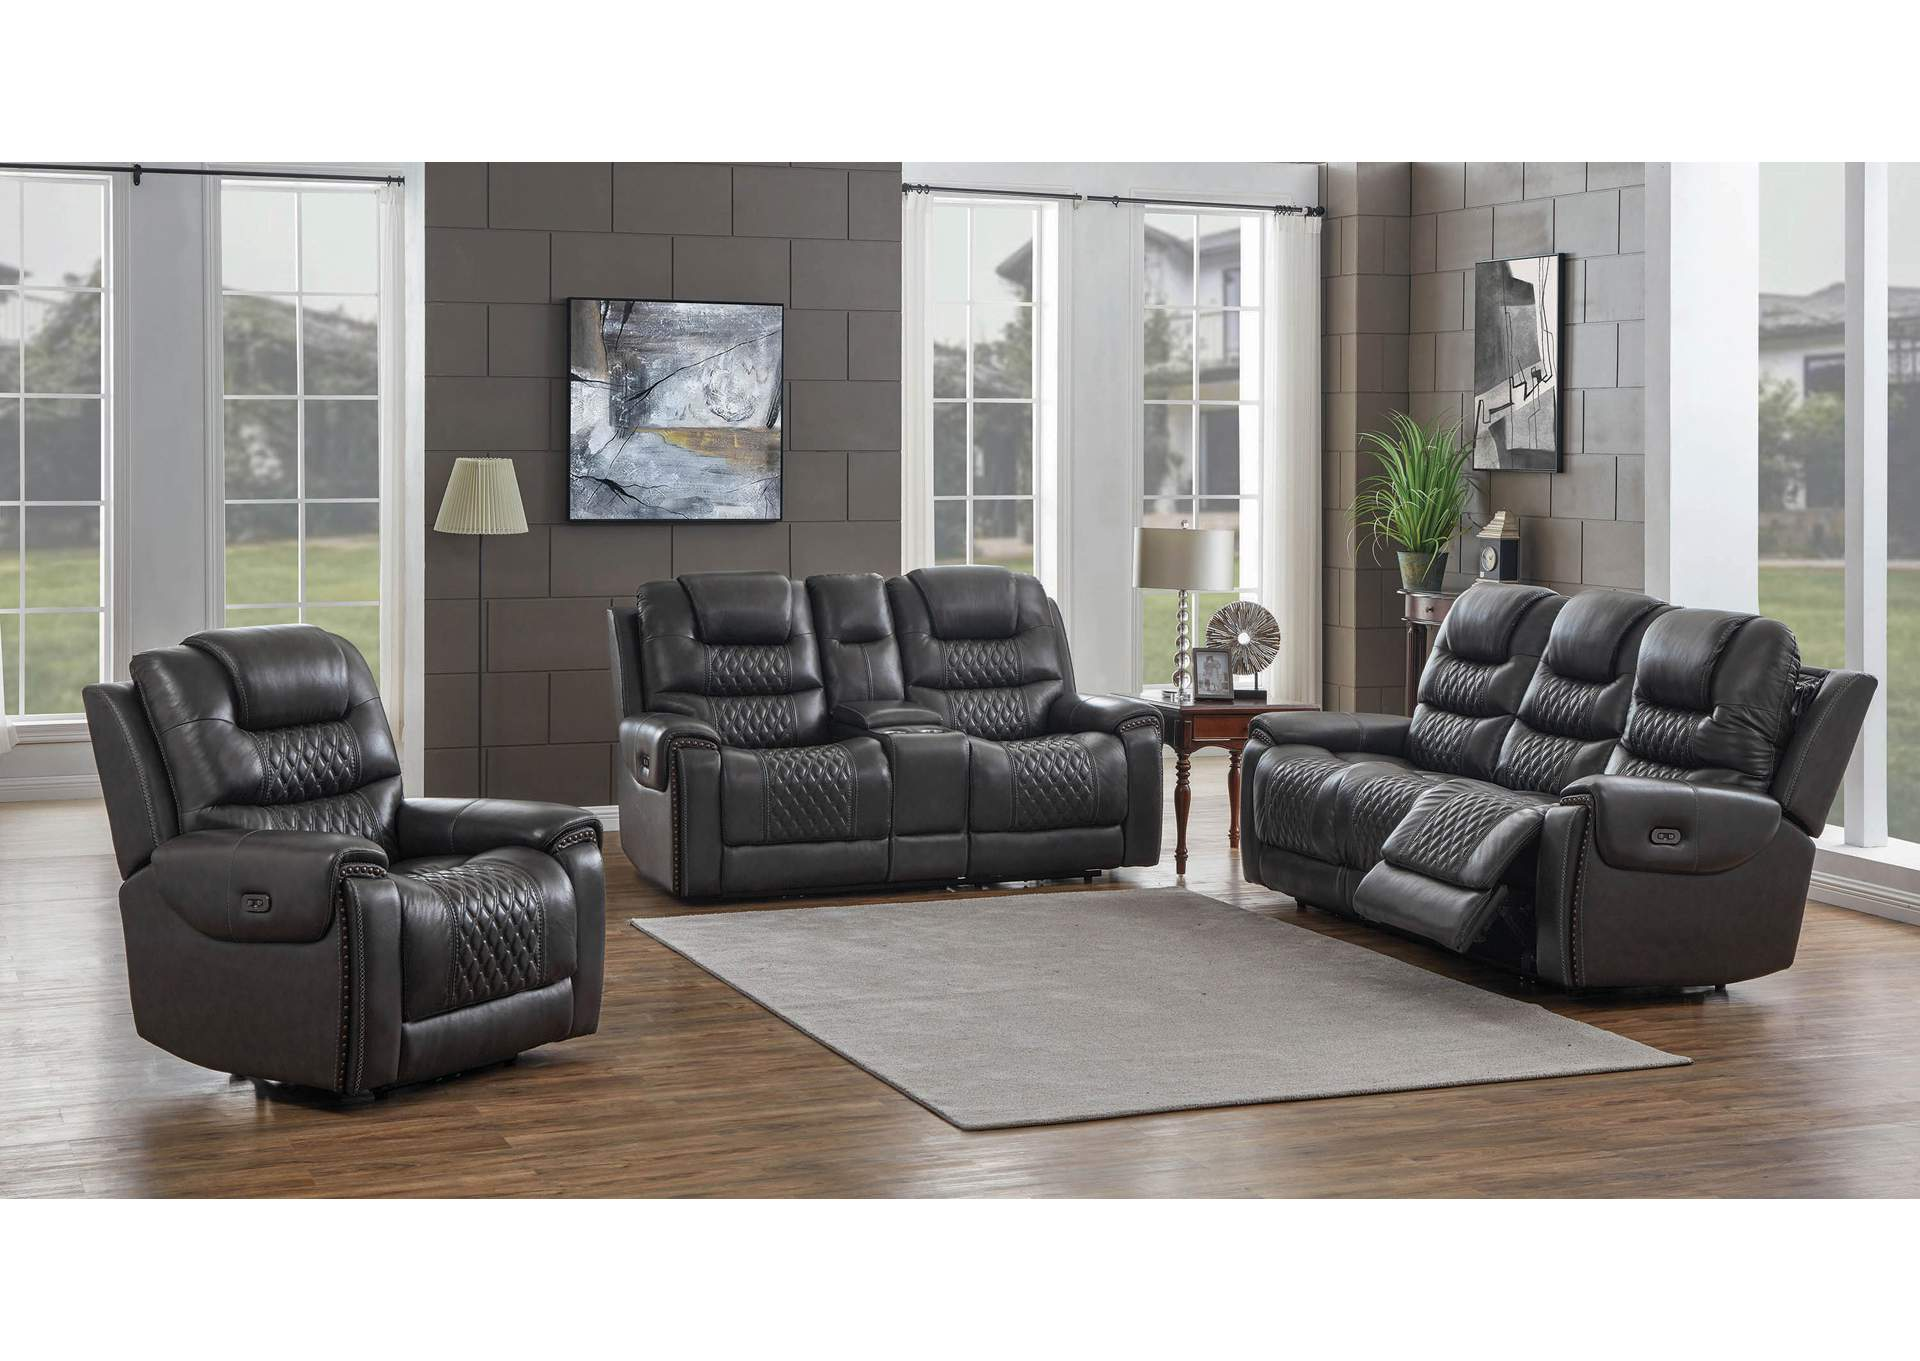 North Mine Shaft 3 Piece Power Reclining Living Room Set Big Box Furniture Discount Furniture Stores In Miami Florida